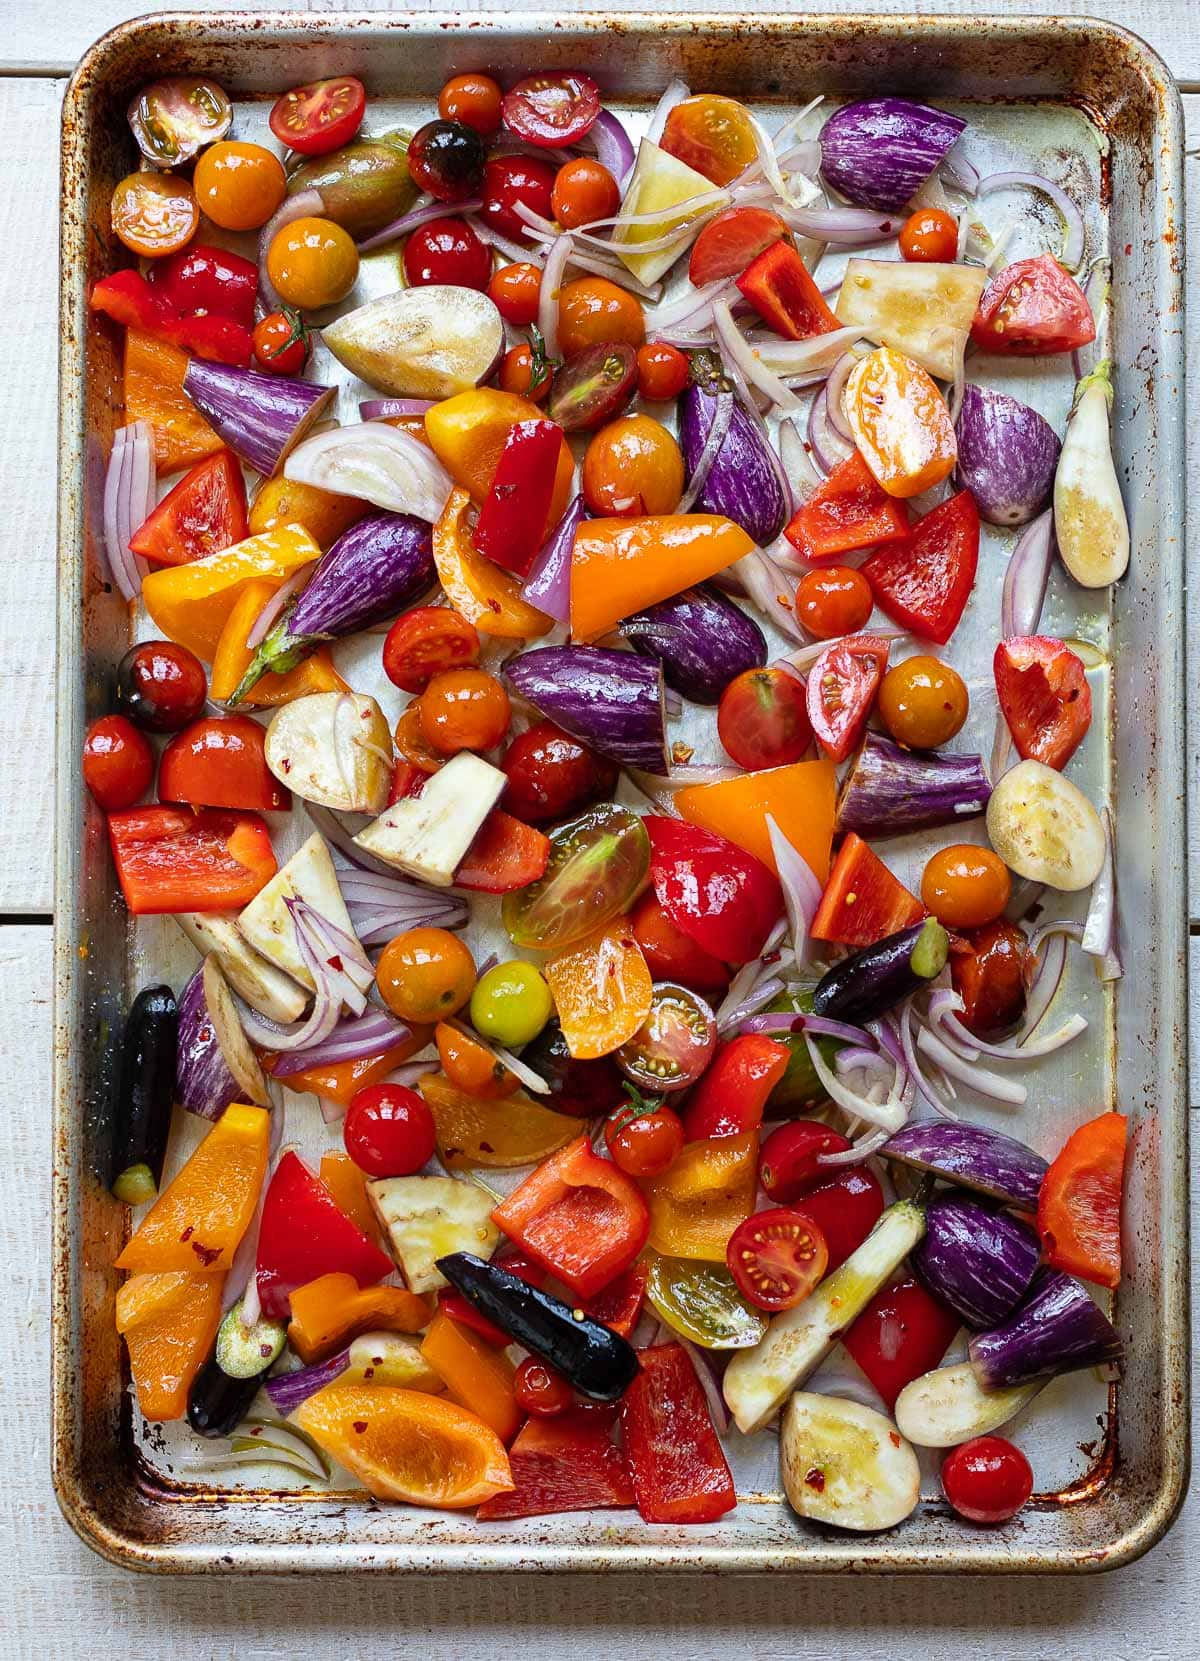 Sheet pan with sliced colorful vegetables prepped for roasting, including purple eggplant, assorted red and orange cherry tomatoes, bell pepper and red onion slices.